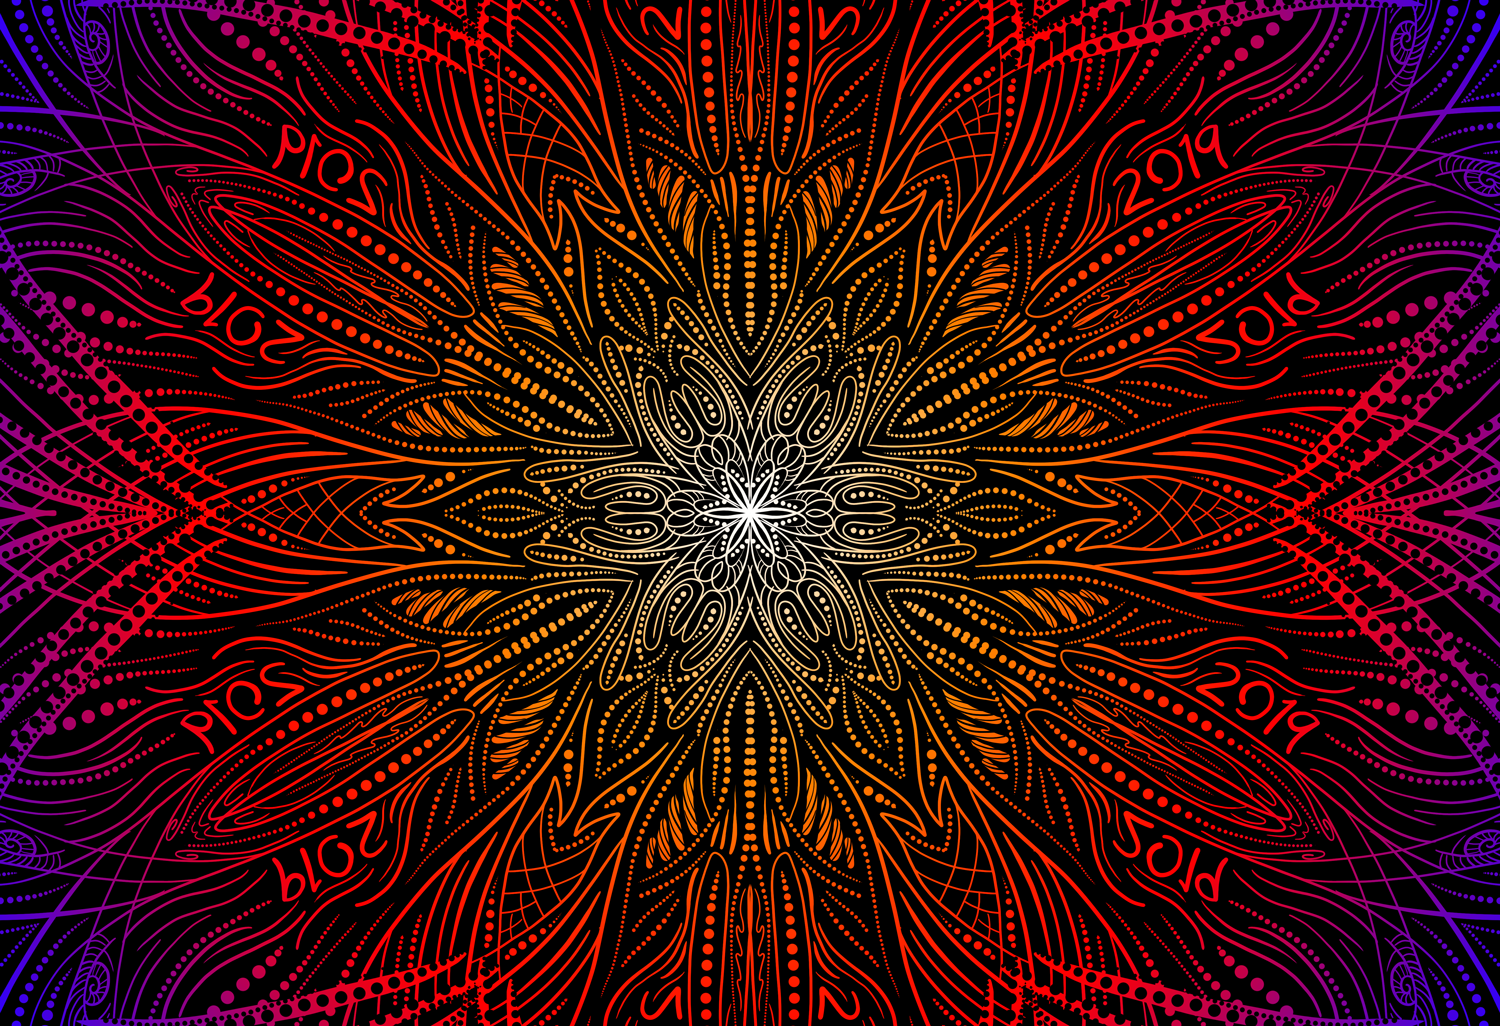 Mandala pattern with a layer of color applied to white pattern